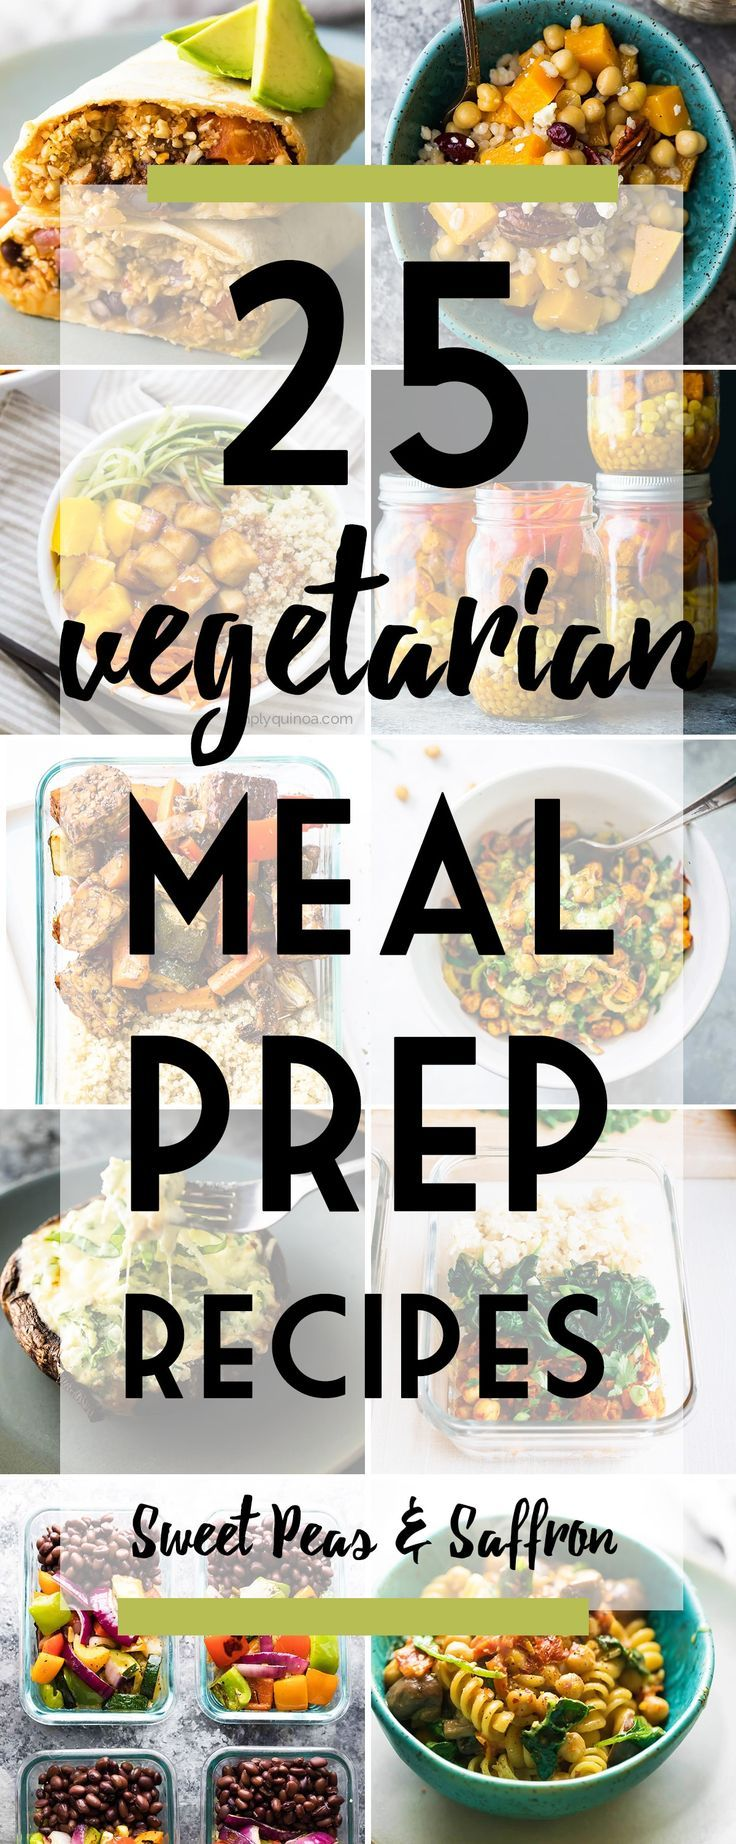 40 Vegetarian Meal Prep Recipes